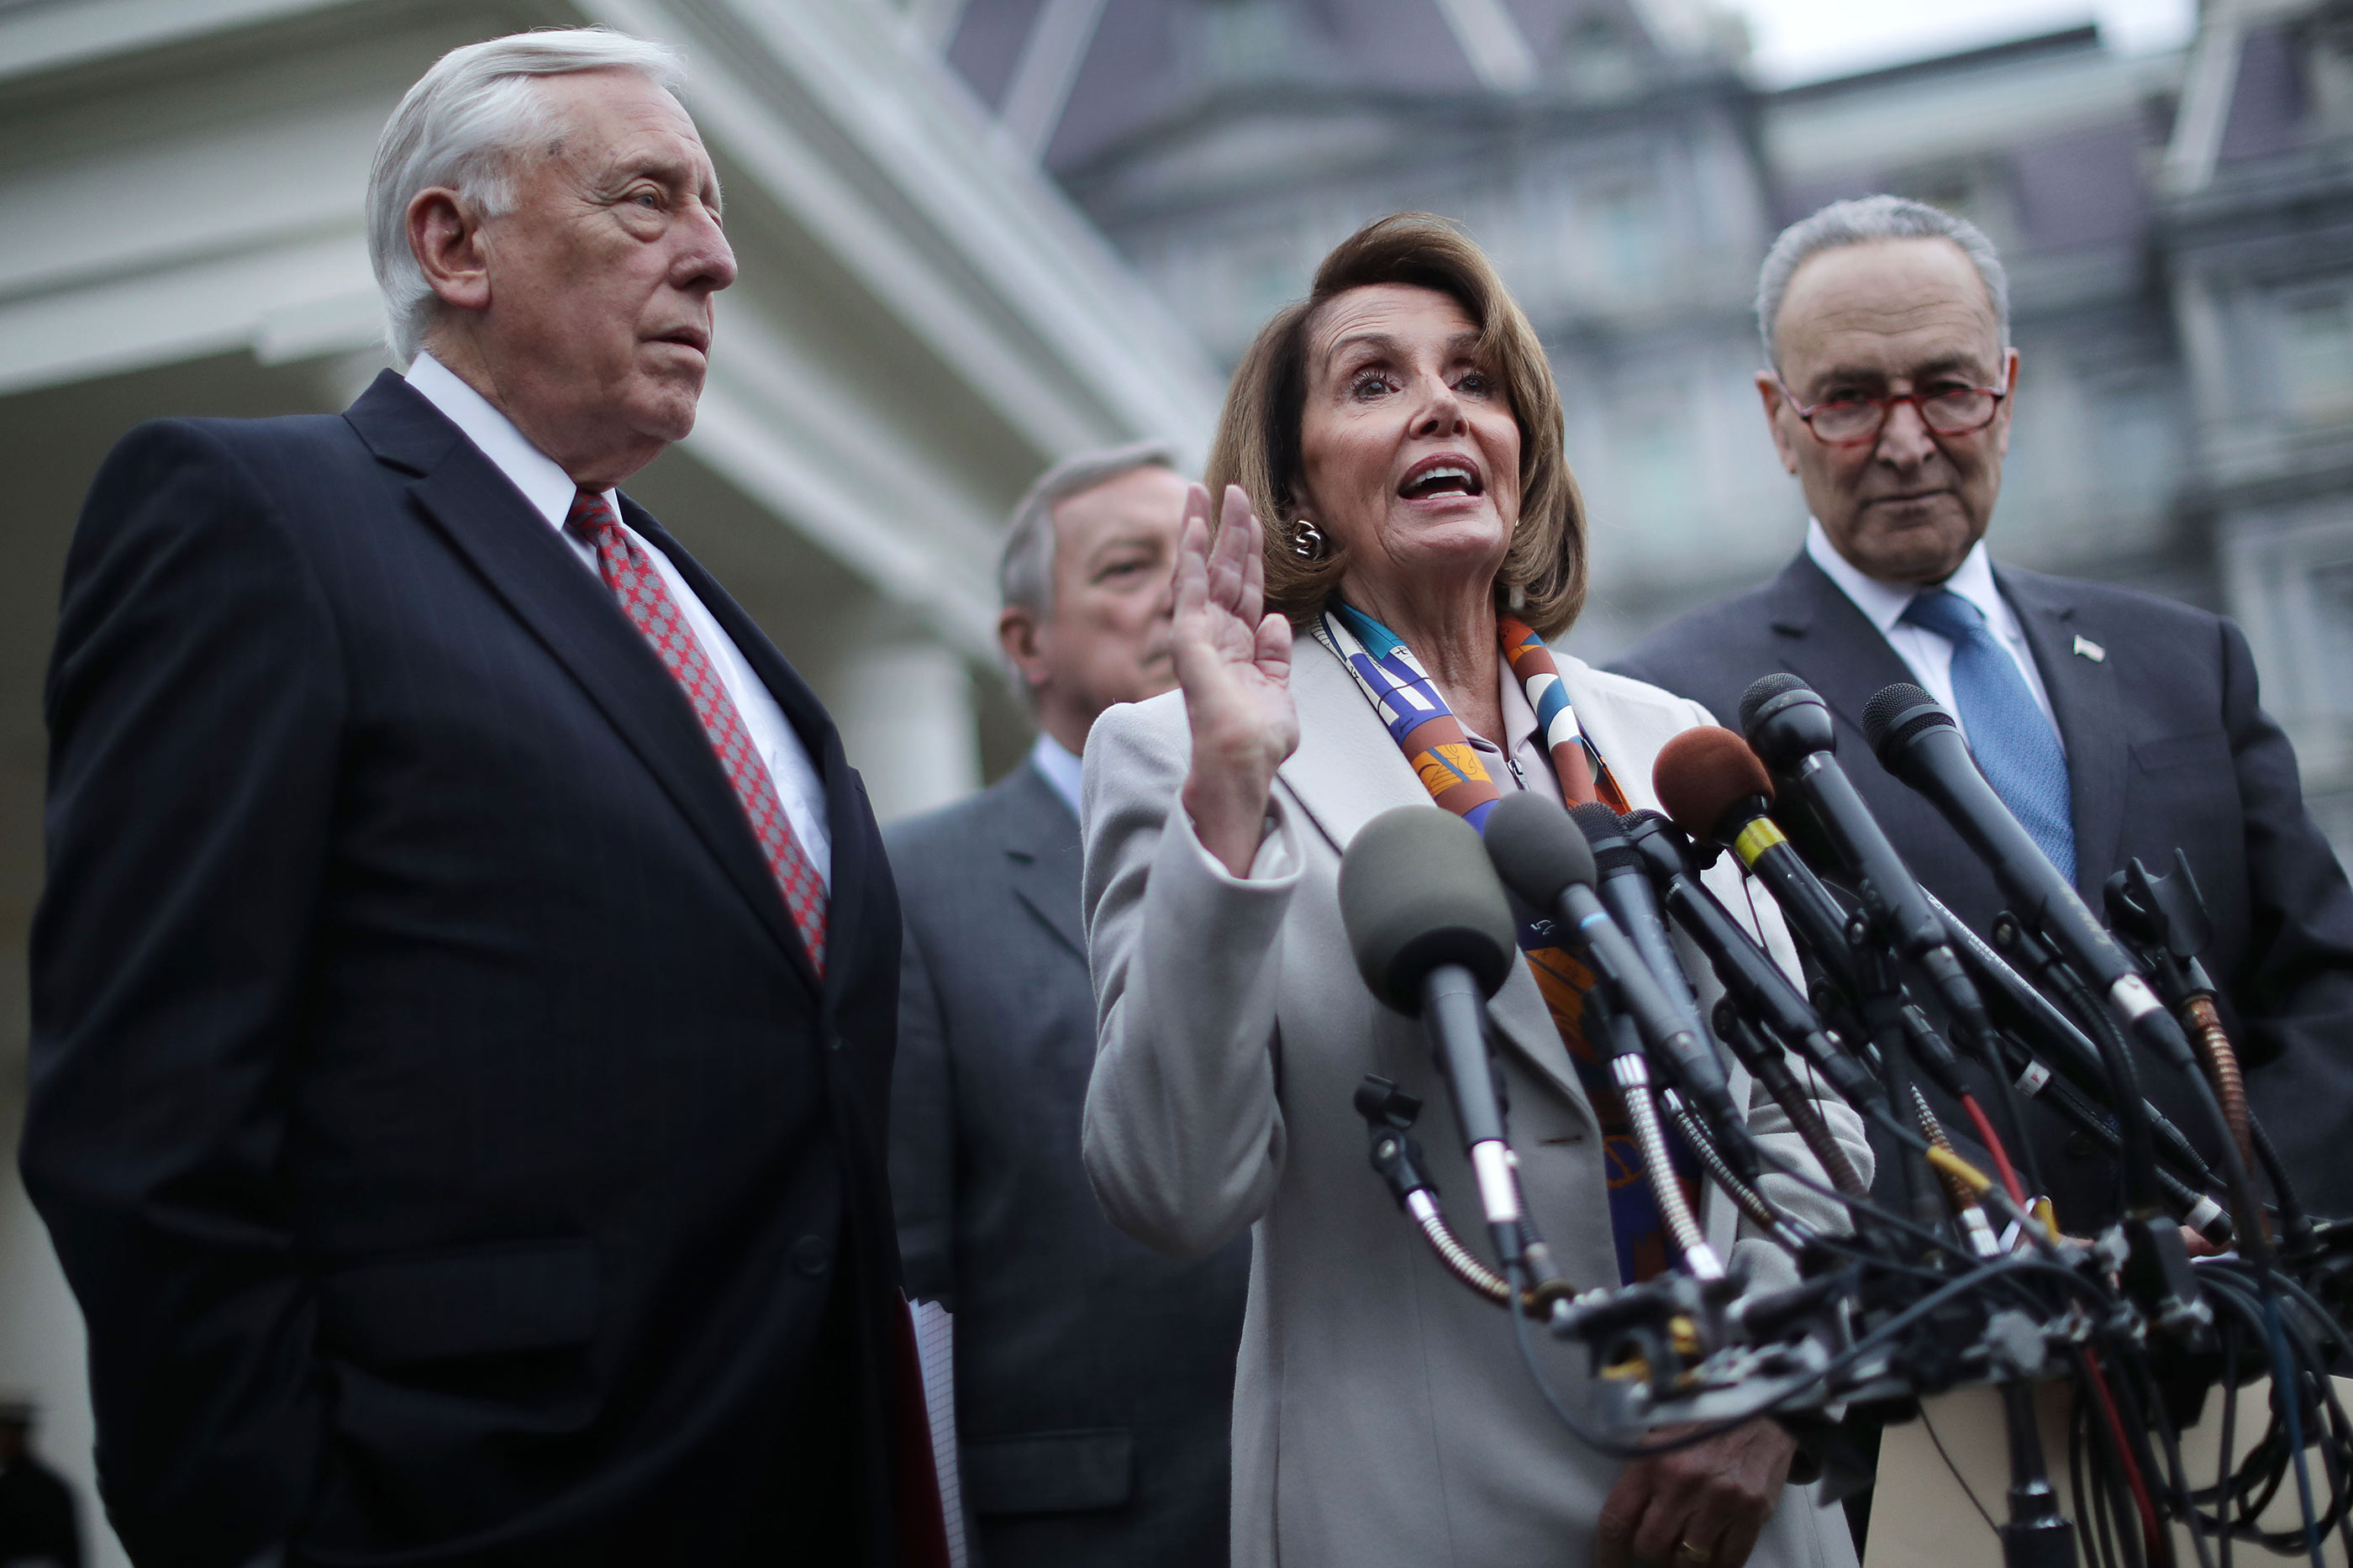 Nancy Pelosi Is Getting a Big Raise as the New Speaker of the House